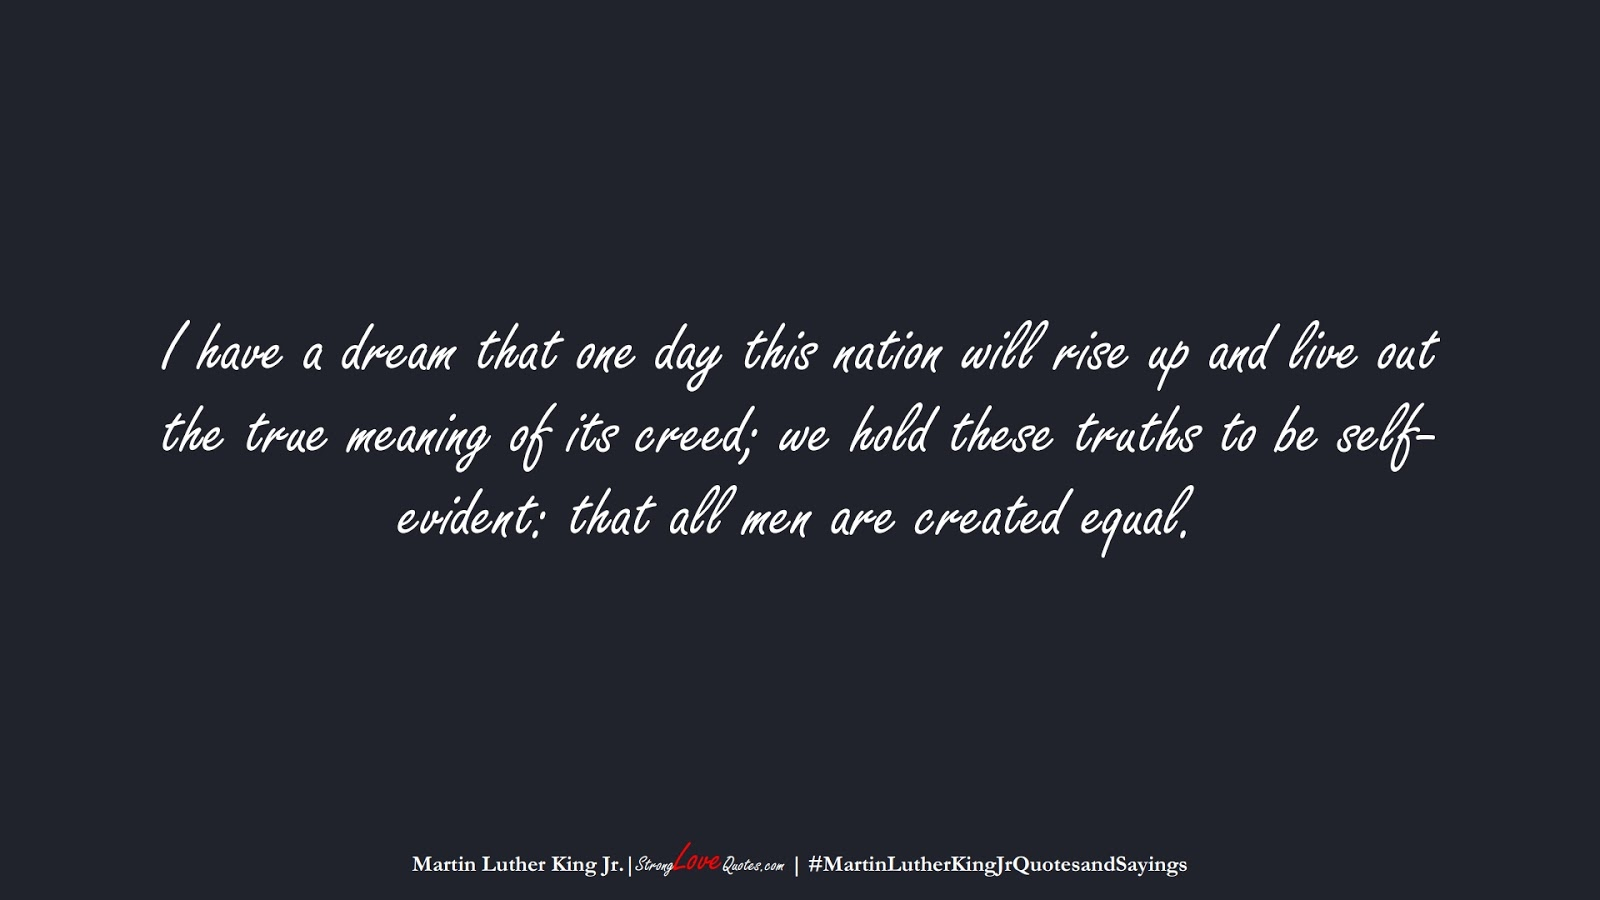 I have a dream that one day this nation will rise up and live out the true meaning of its creed; we hold these truths to be self-evident: that all men are created equal. (Martin Luther King Jr.);  #MartinLutherKingJrQuotesandSayings